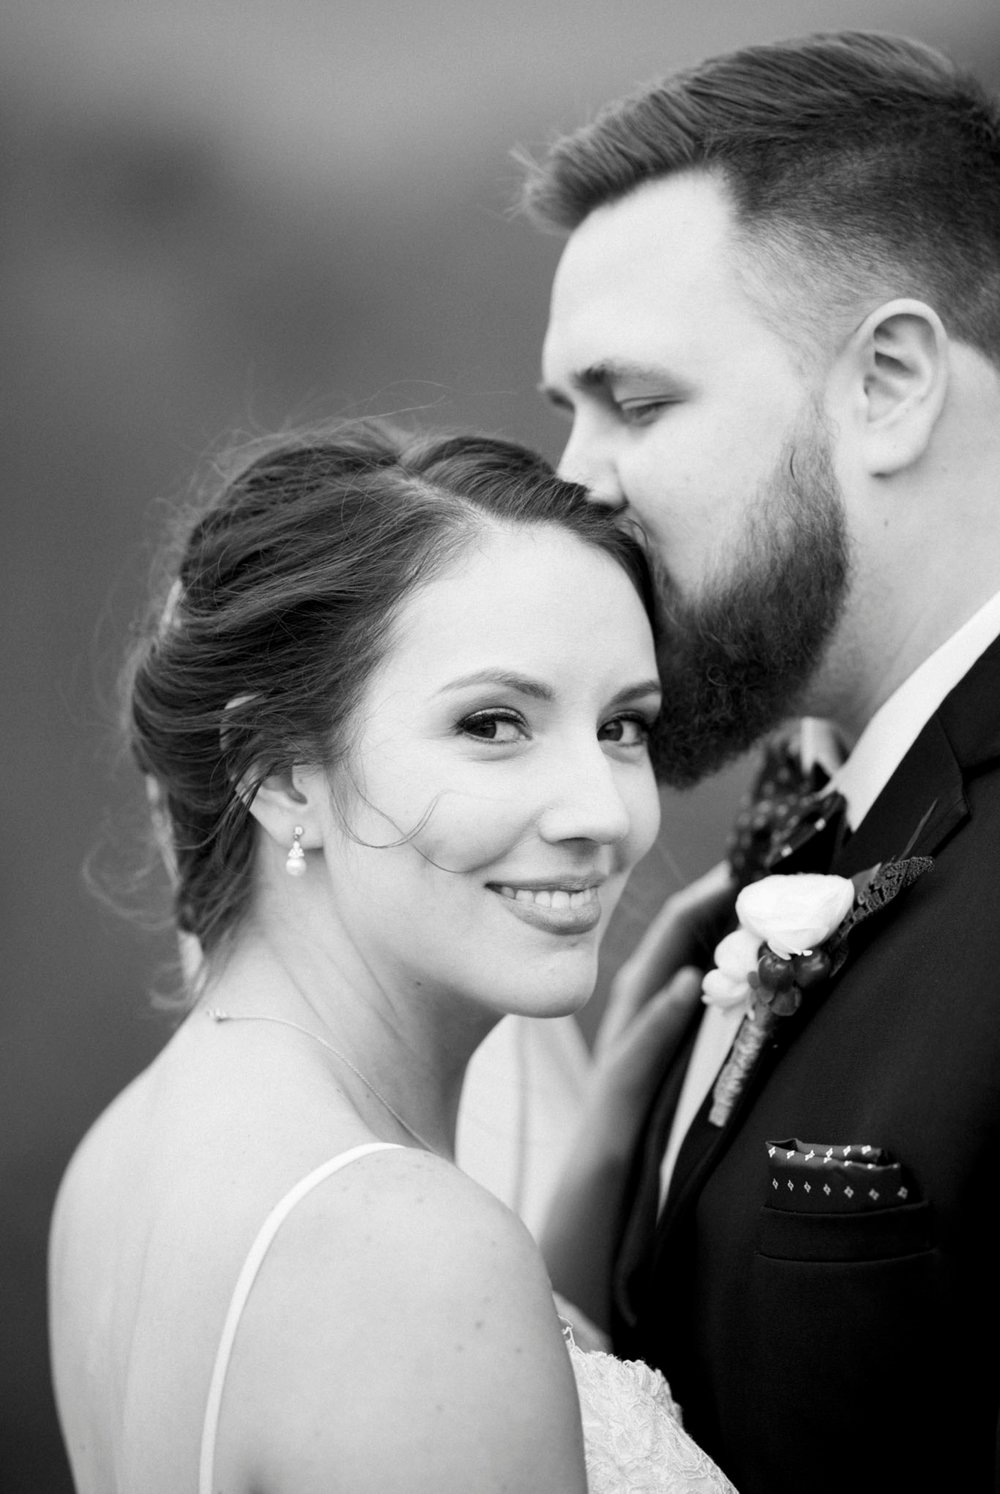 IrvineEstate_LexingtonVA_Wedding_FallWedding_VirginiaWeddingPhotographer 89.jpg